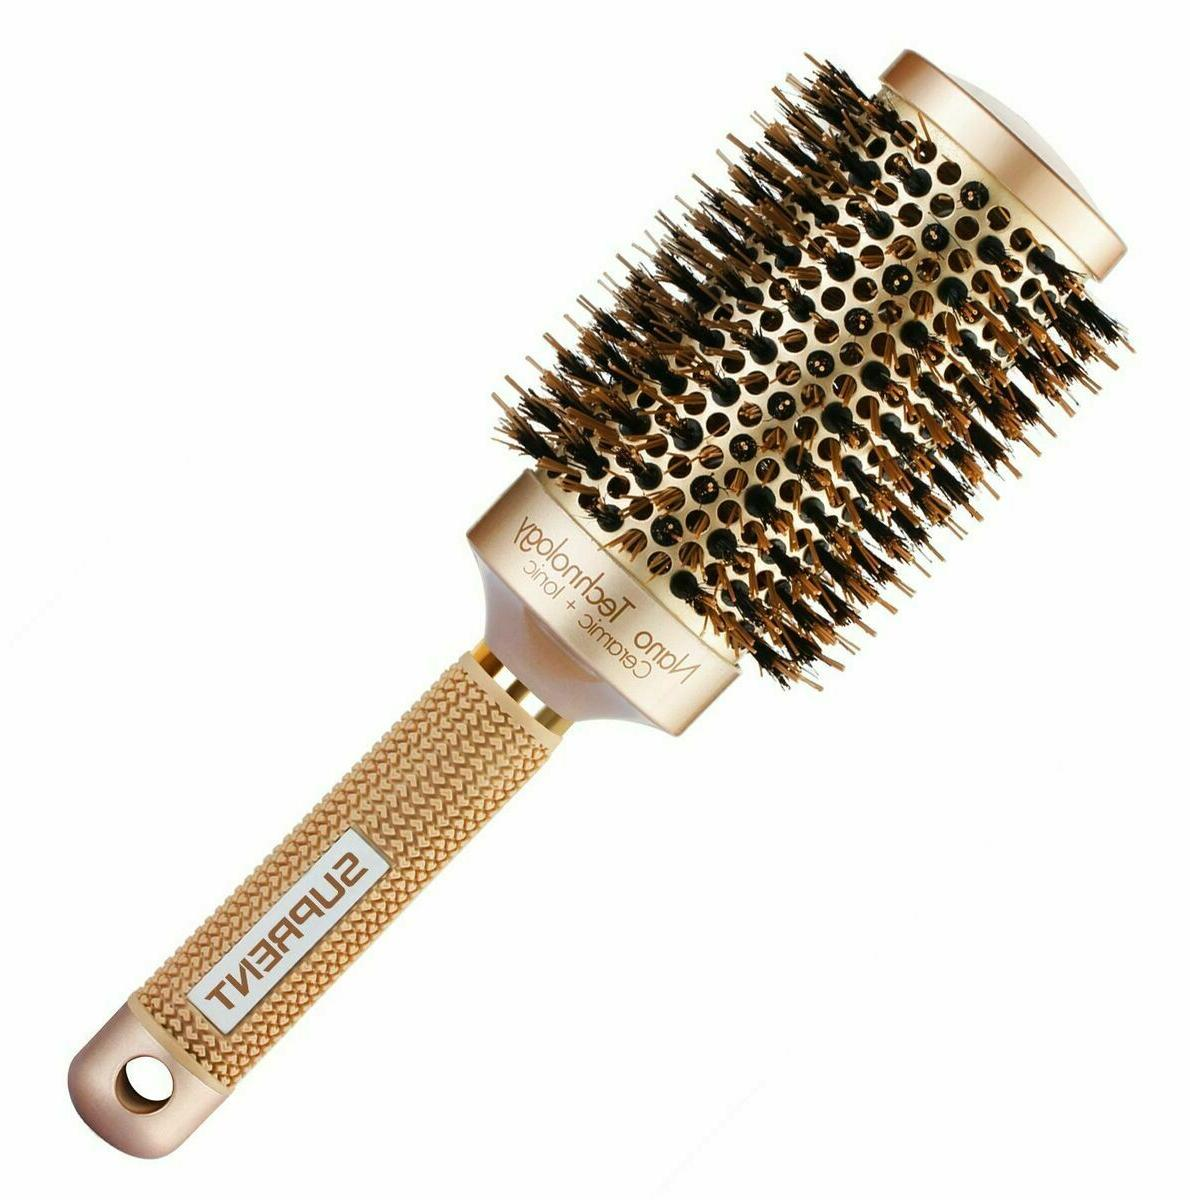 Suprent Blowout Nano Thermic Ceramic Ionic Round Barrel Hair